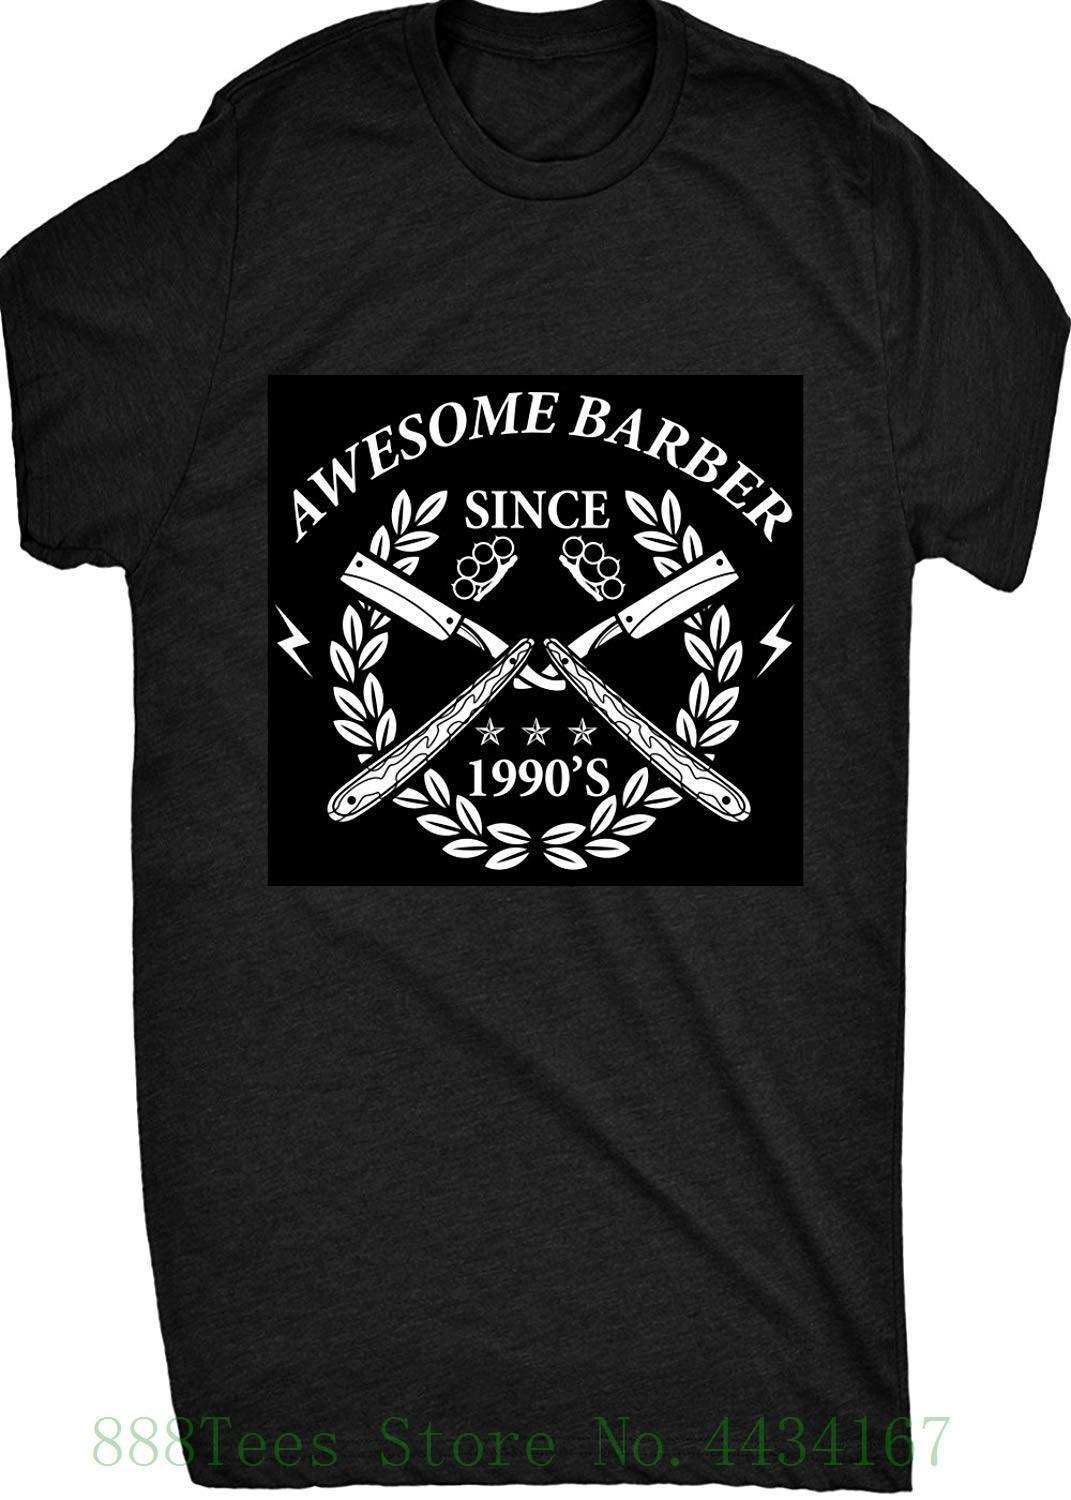 Awesome Barber Since 1990 Mens T Shirt Mens High Quality Custom